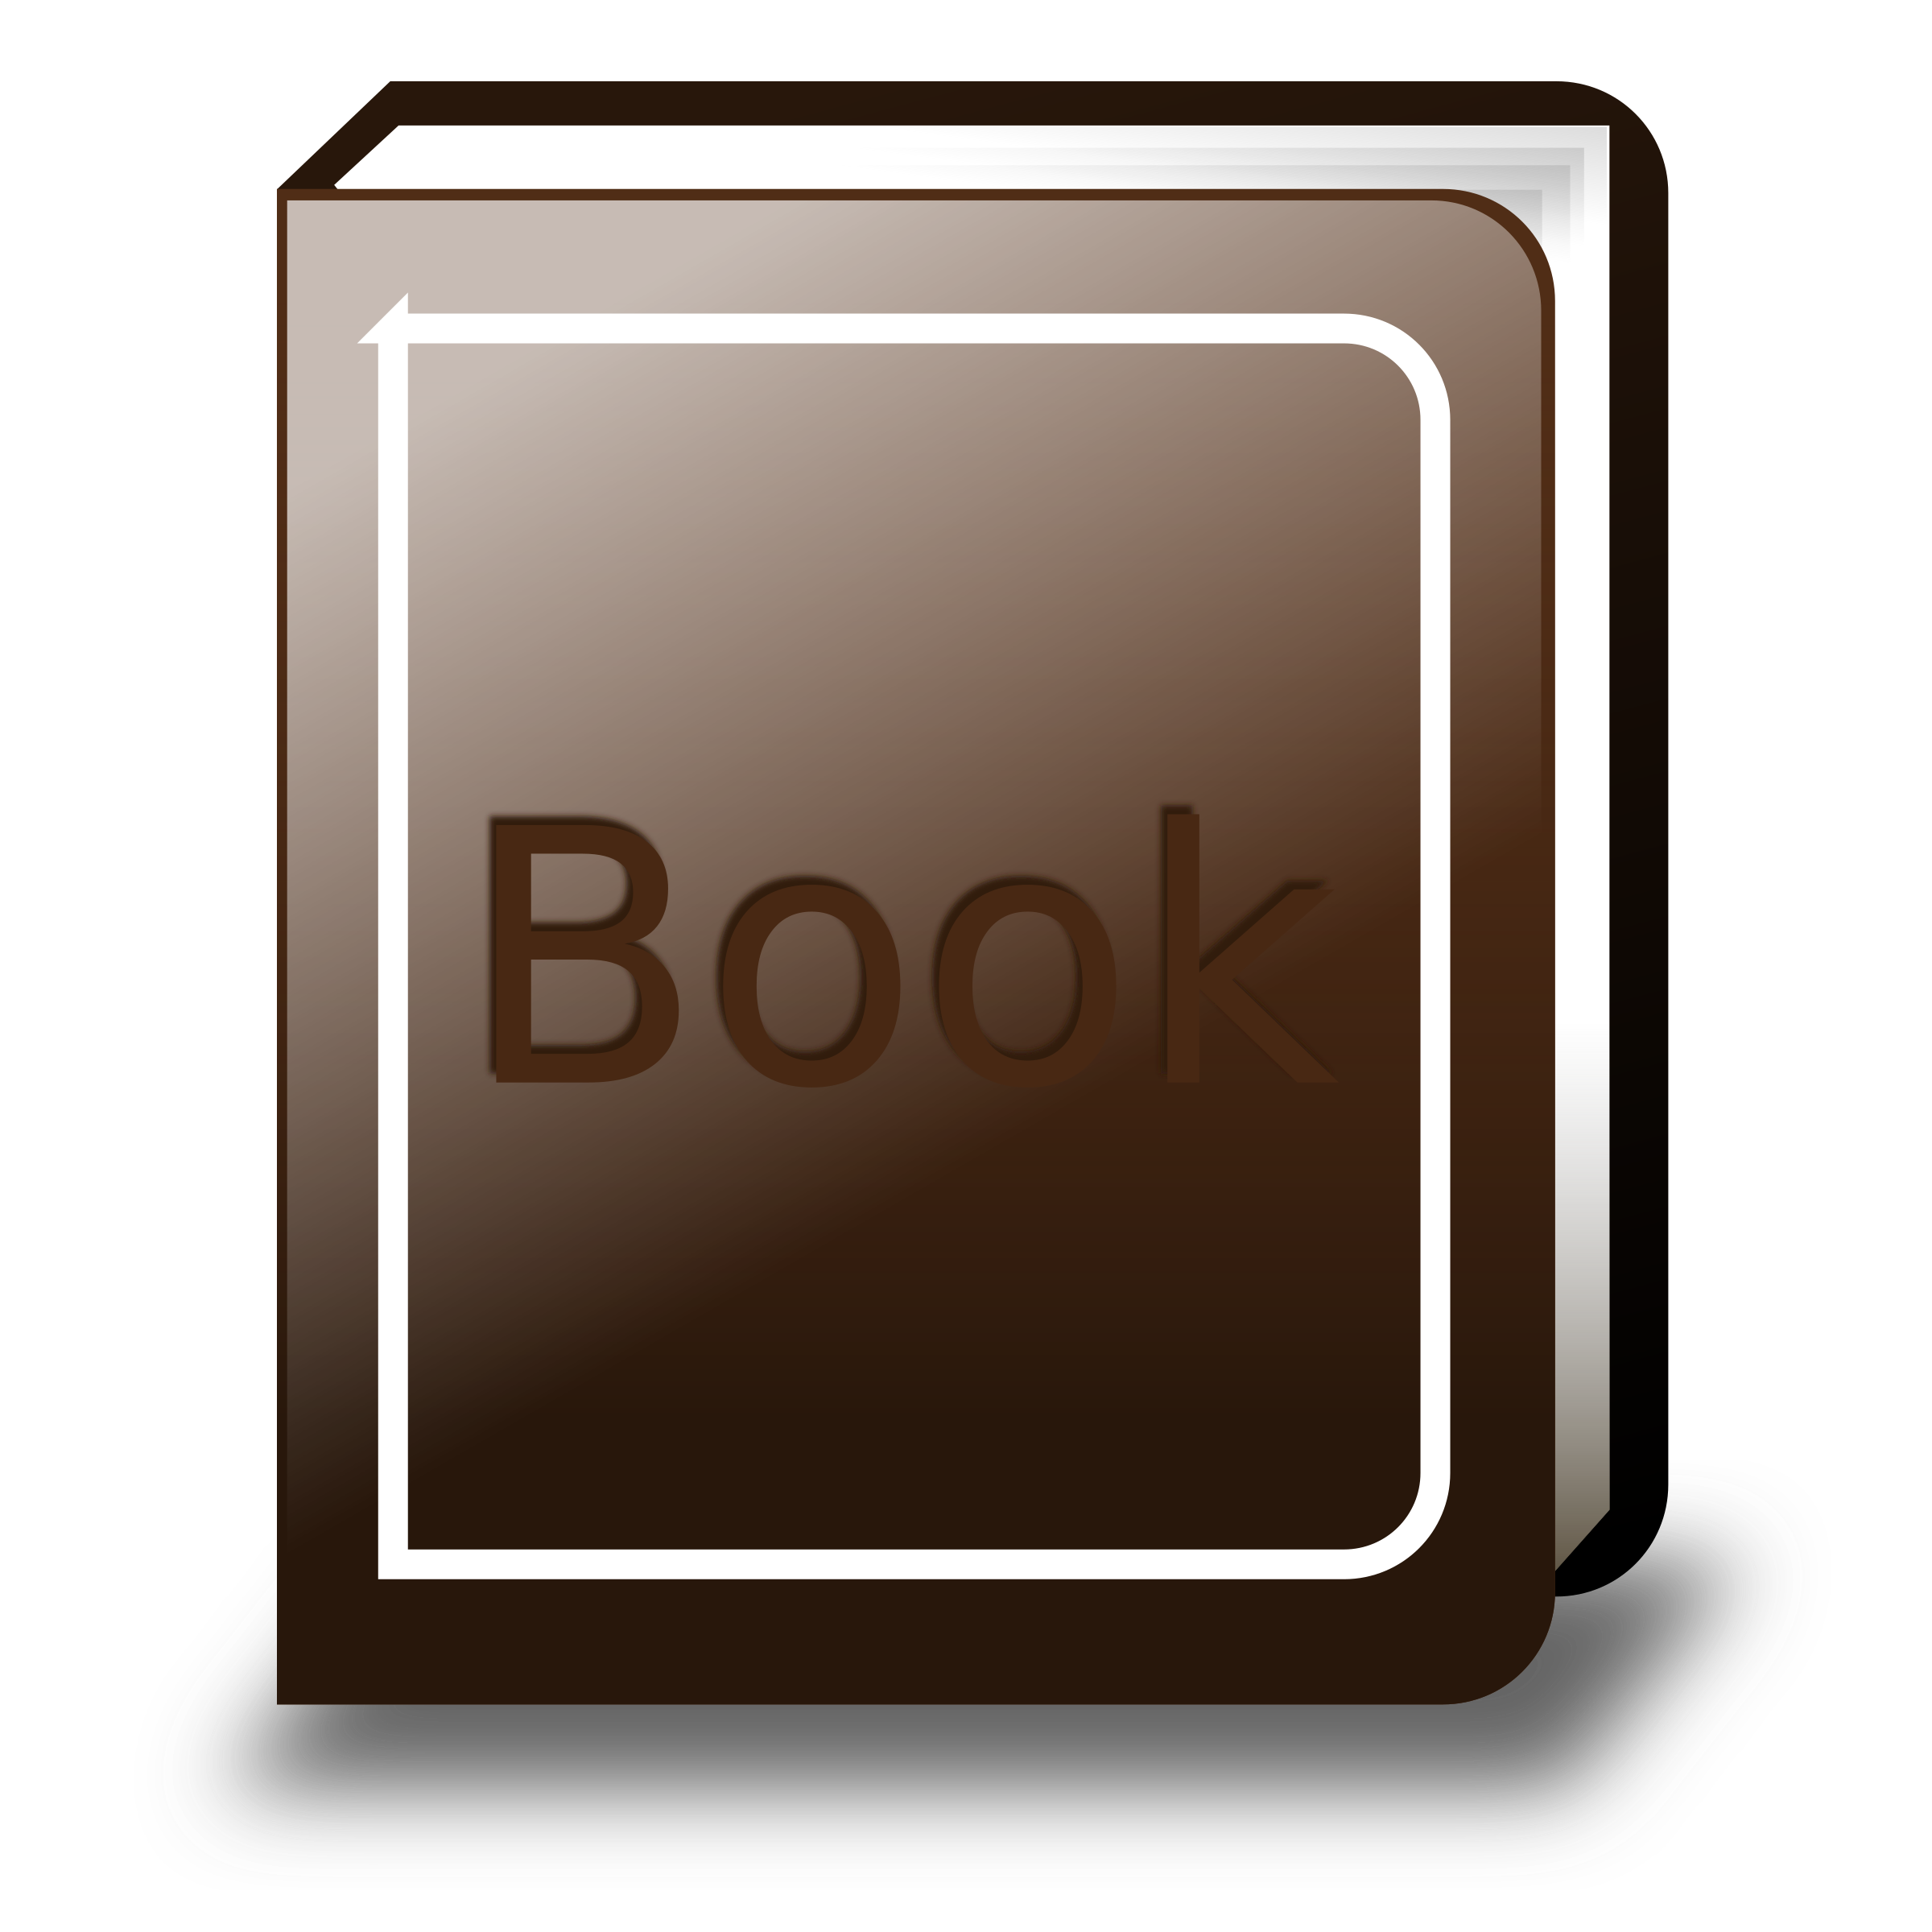 Brown Book by ronoaldo